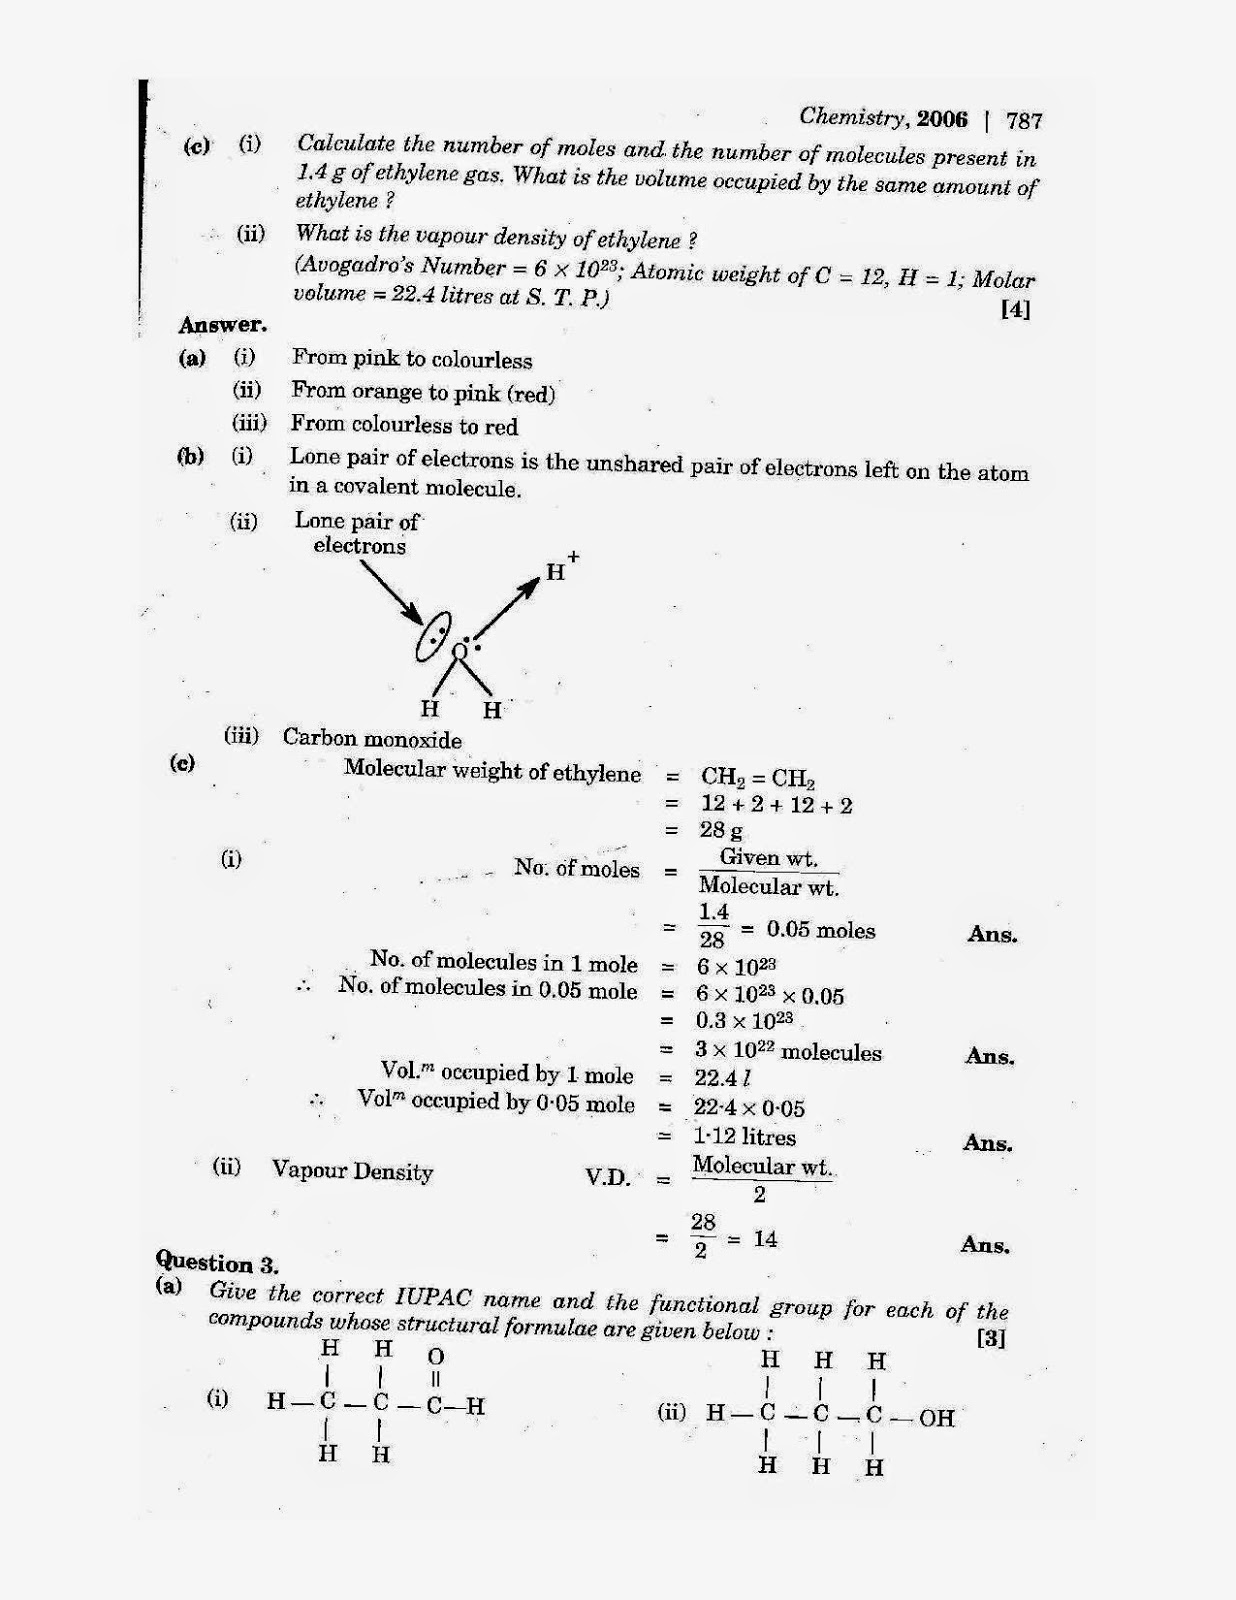 2006 paper 1 question b Cambridge international examinations a / as level accounting-9706 past papers 2006 may 9706-accounting past papers 2006 2006 examiner report question paper 1.